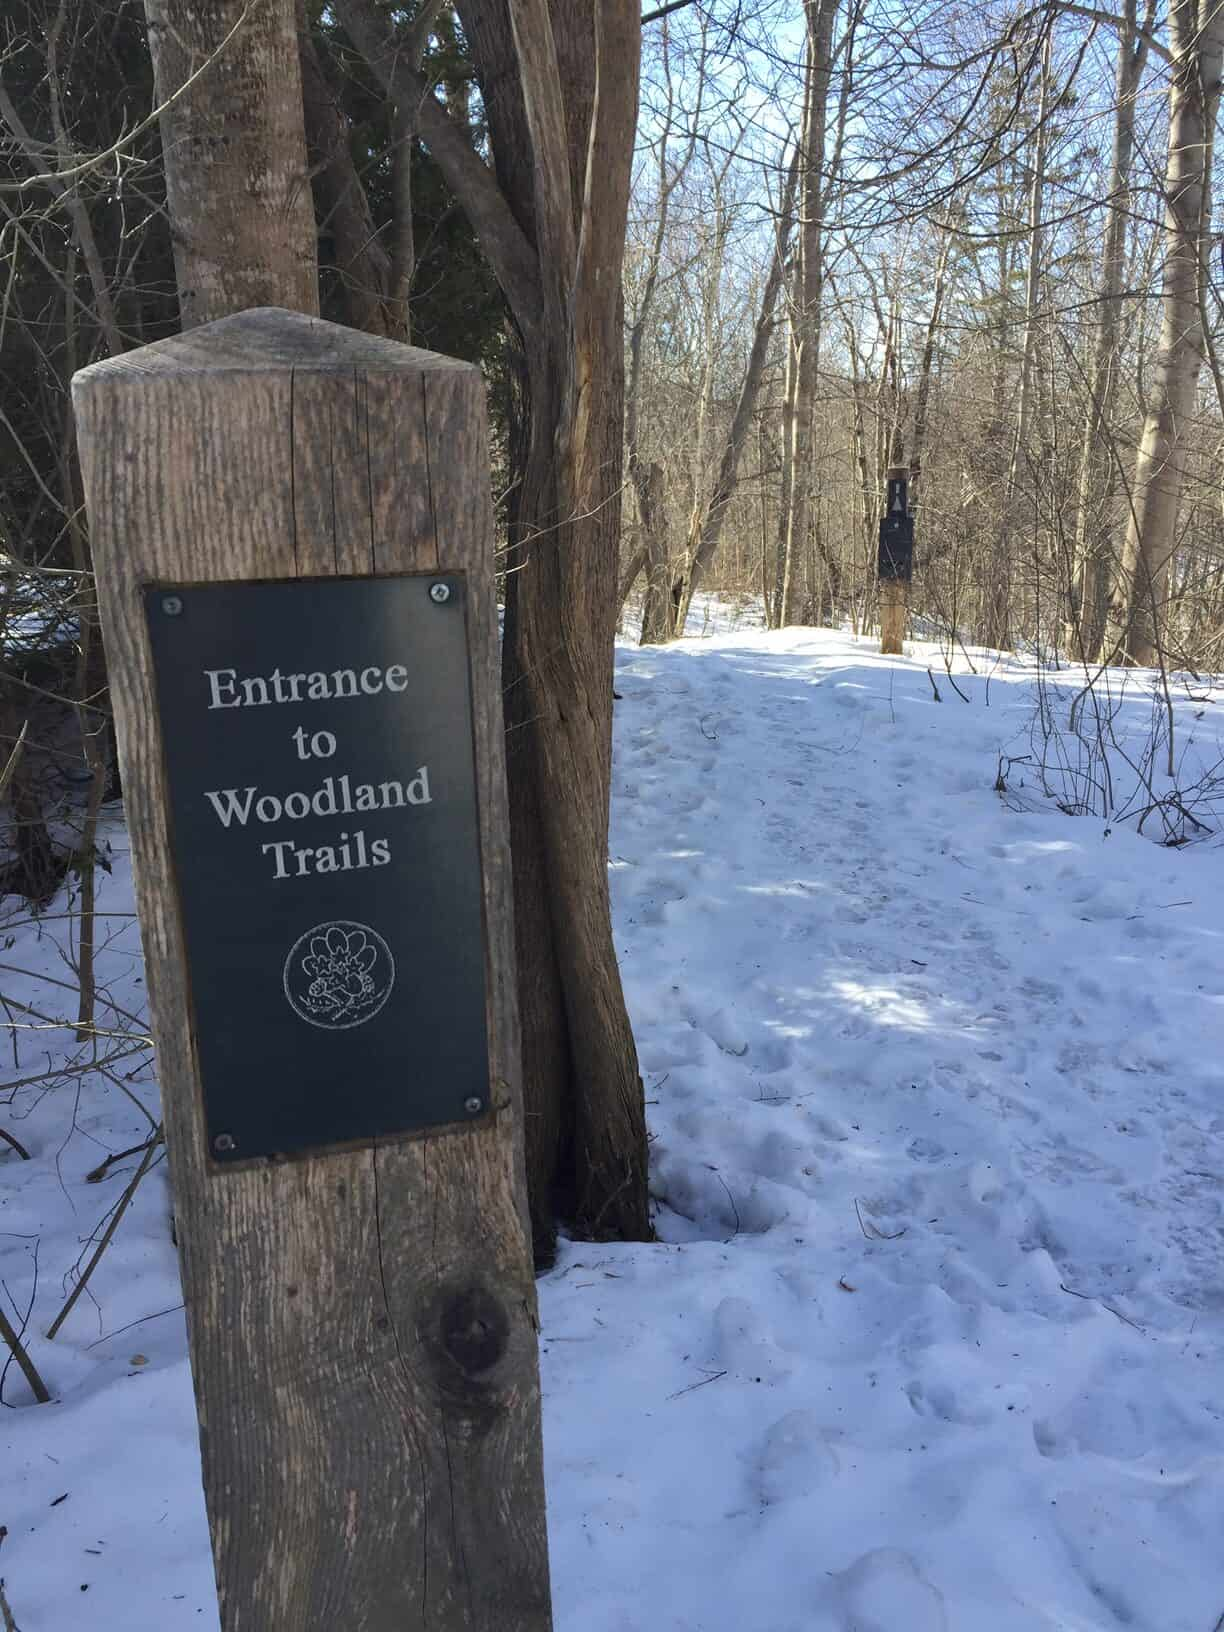 Sign at entrance to woodland trails